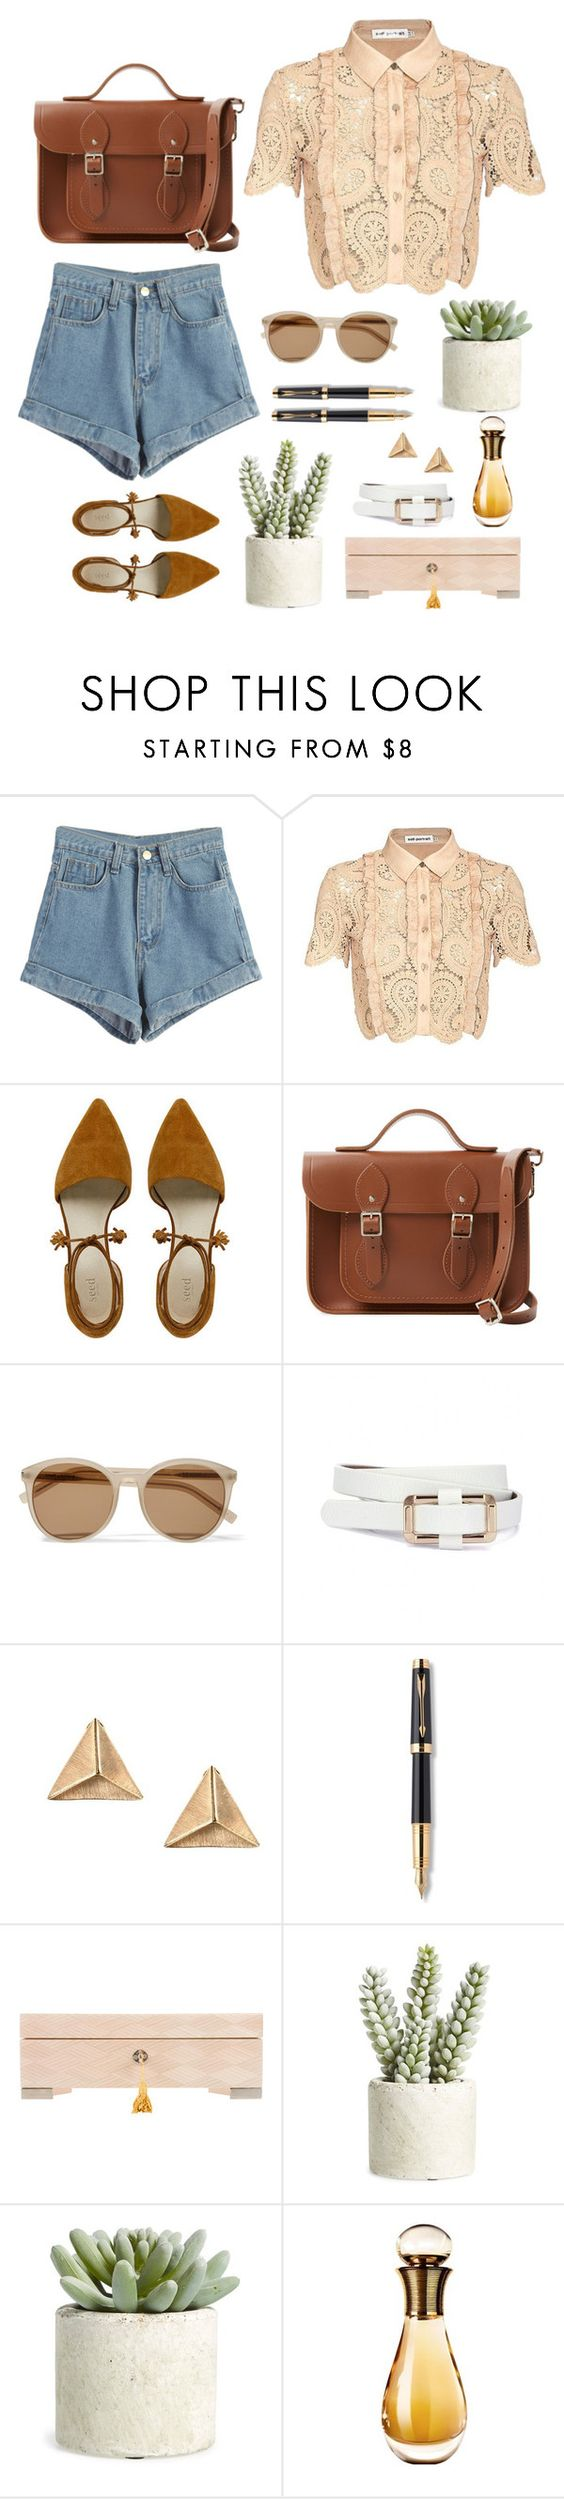 """""""Fragile dreams"""" by laslow ❤ liked on Polyvore featuring WithChic, self-portrait, The Cambridge Satchel Company, Yves Saint Laurent, Parker, Allstate Floral and Christian Dior"""